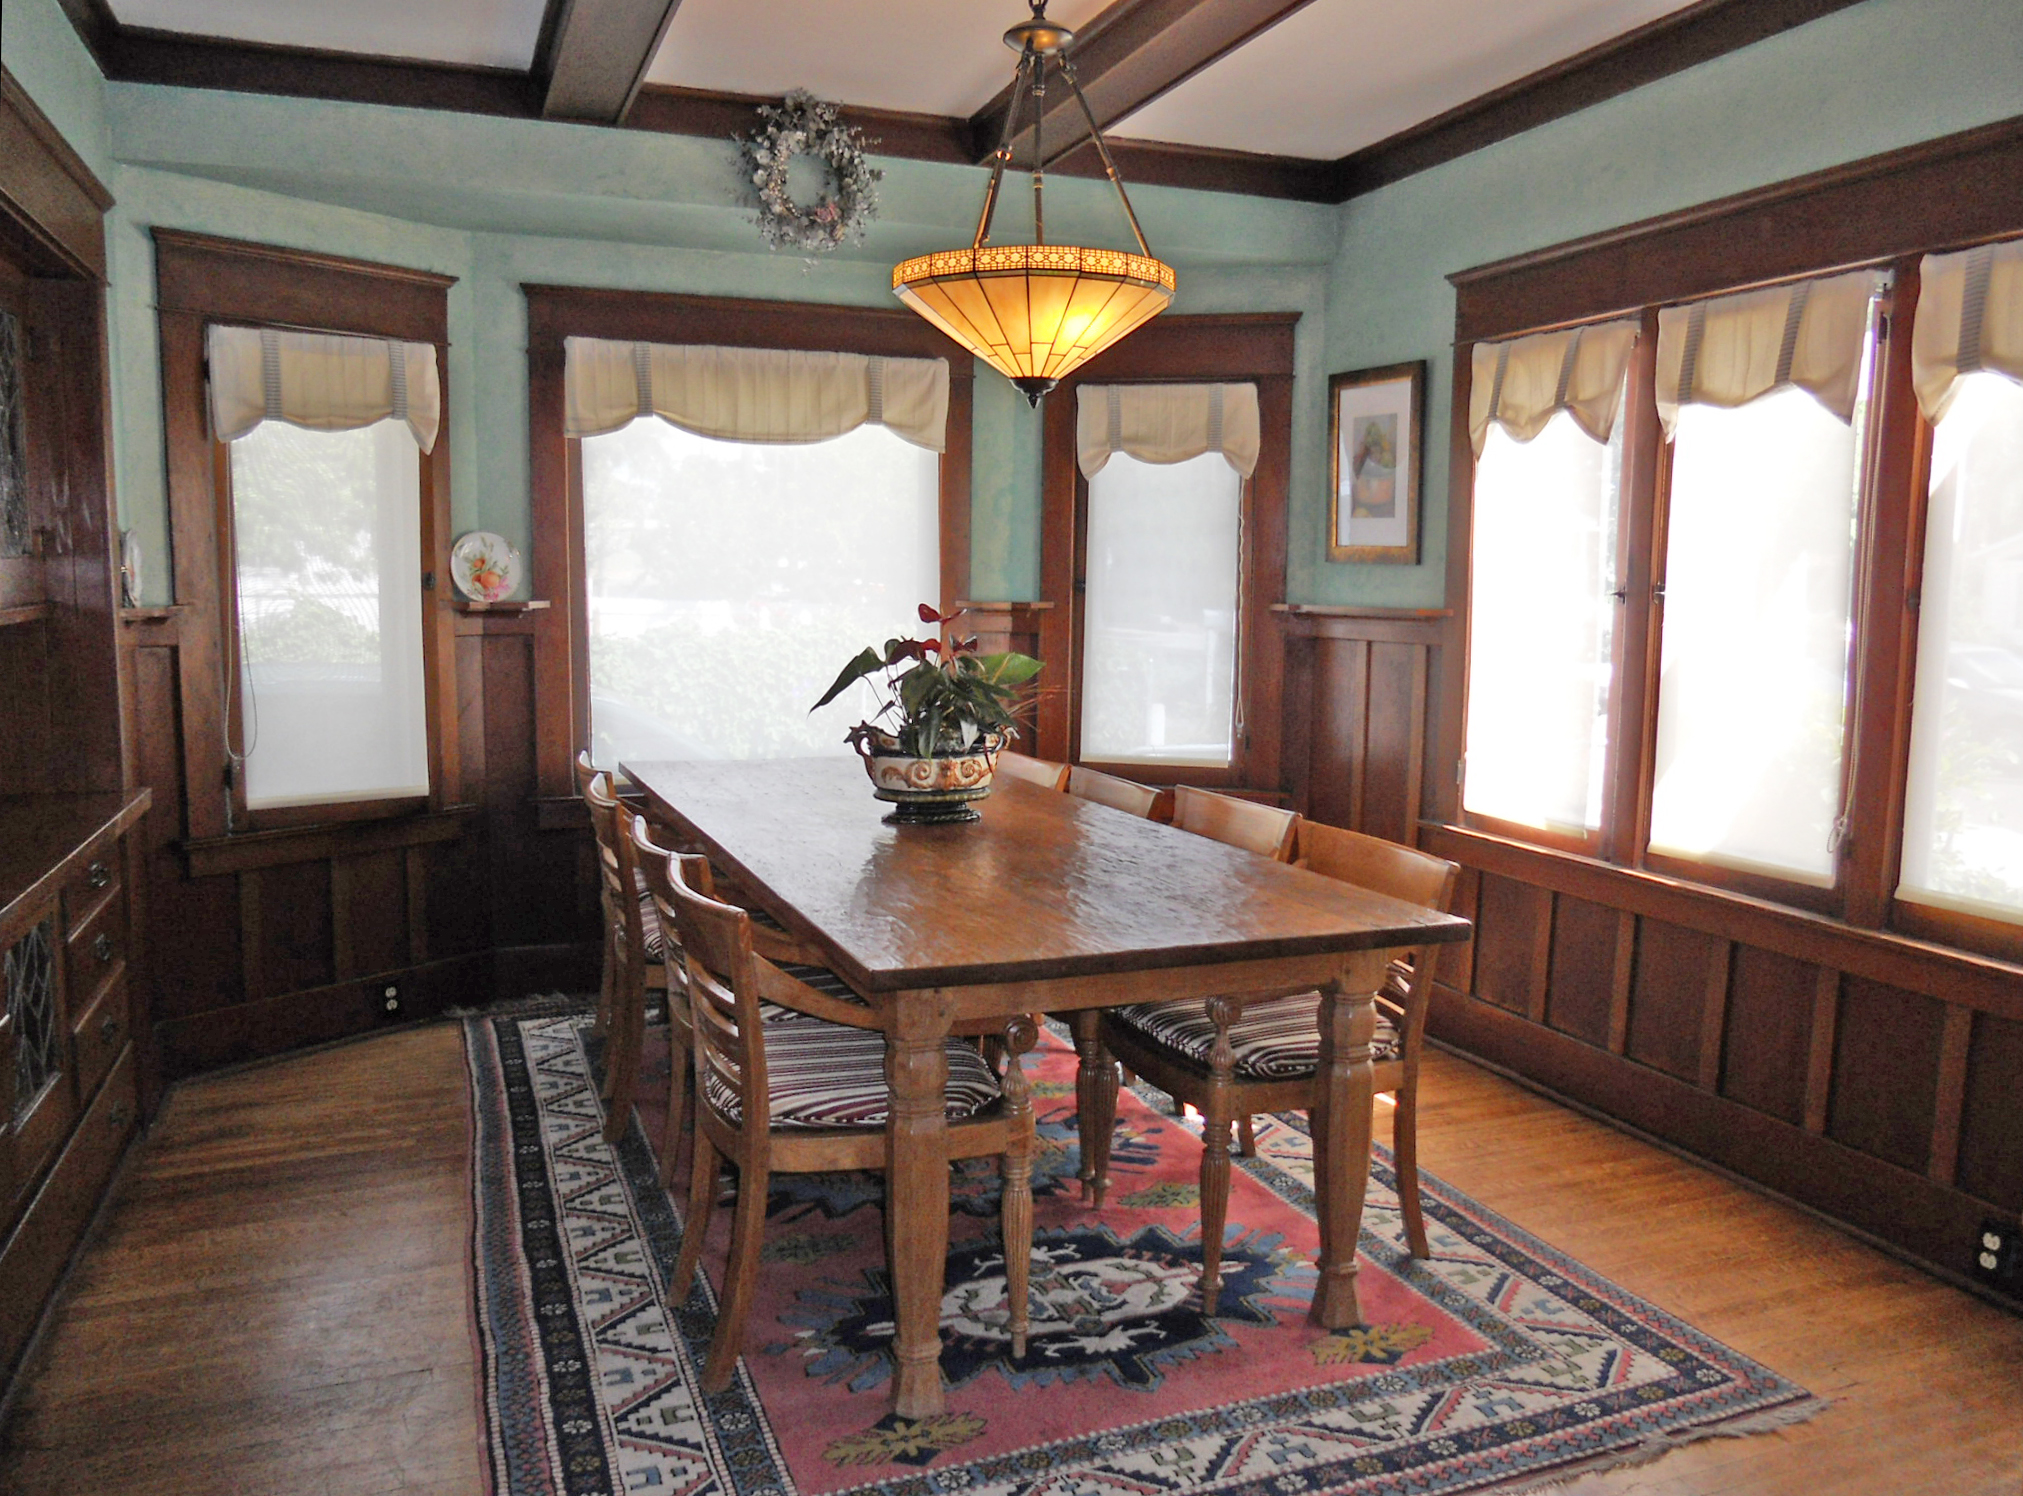 Magnificent formal dining room with wood-beamed ceiling, hardwood floors and plate rails!